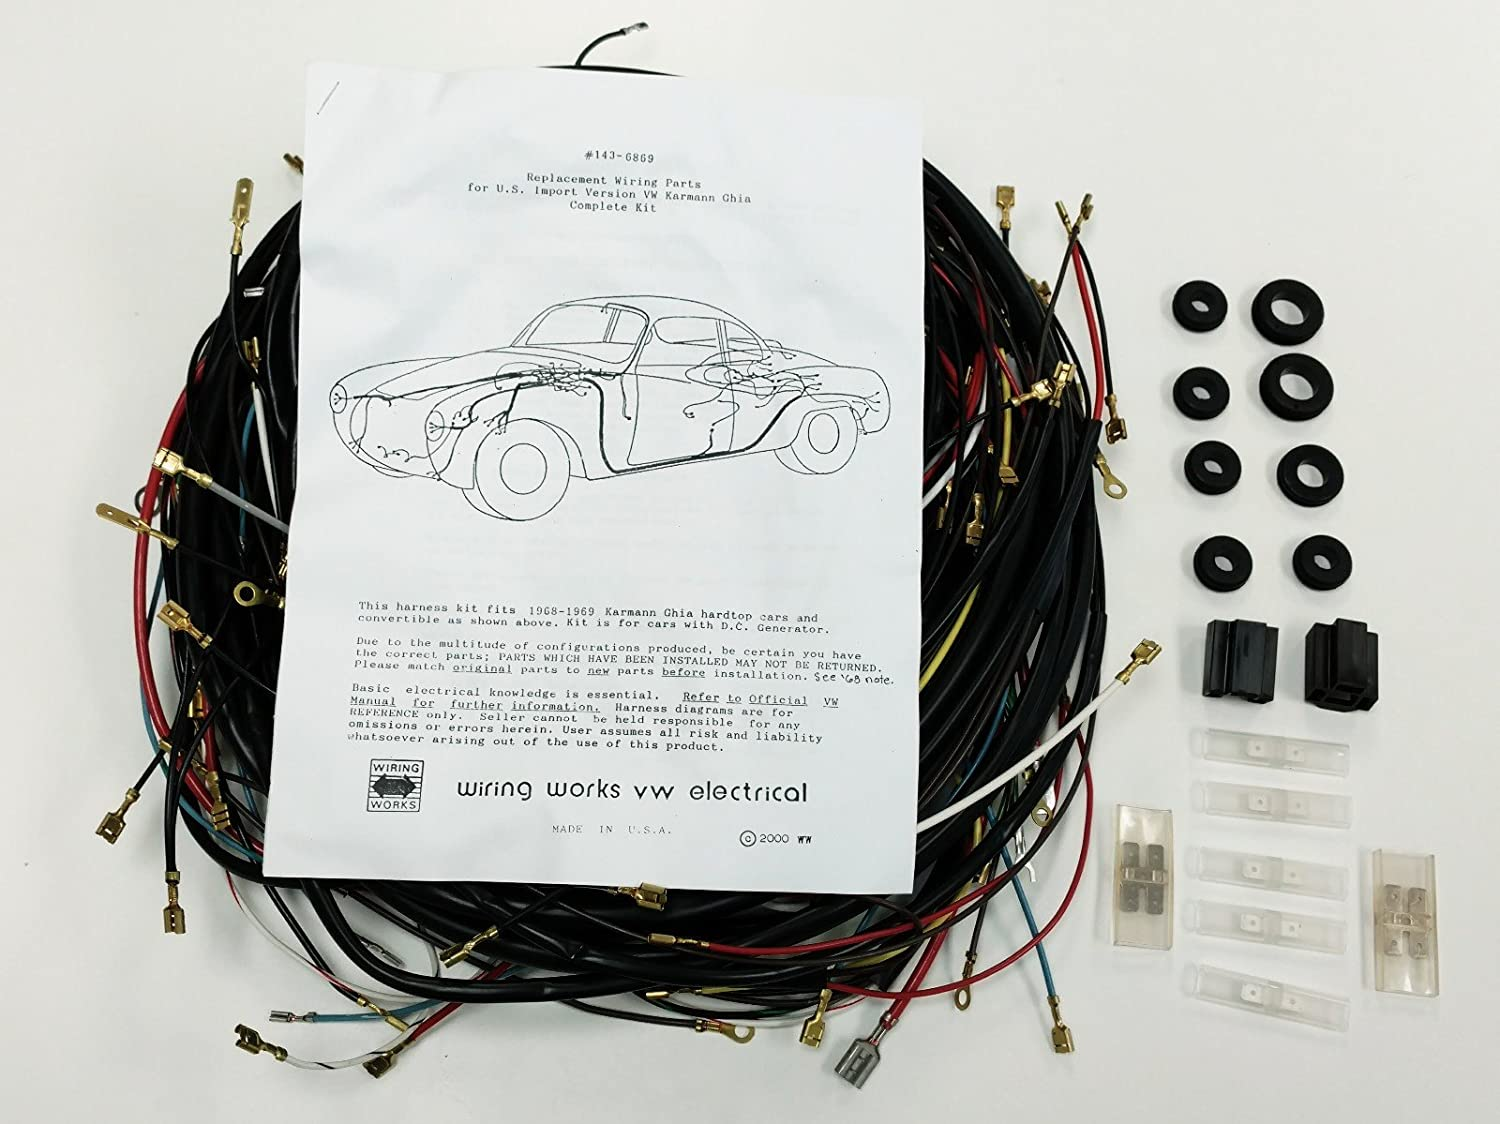 69 Vw Generator Wiring Diagram 1968 1969 All Karmann Ghia Complete Works Wire Harness Kit Usa Made Automotive